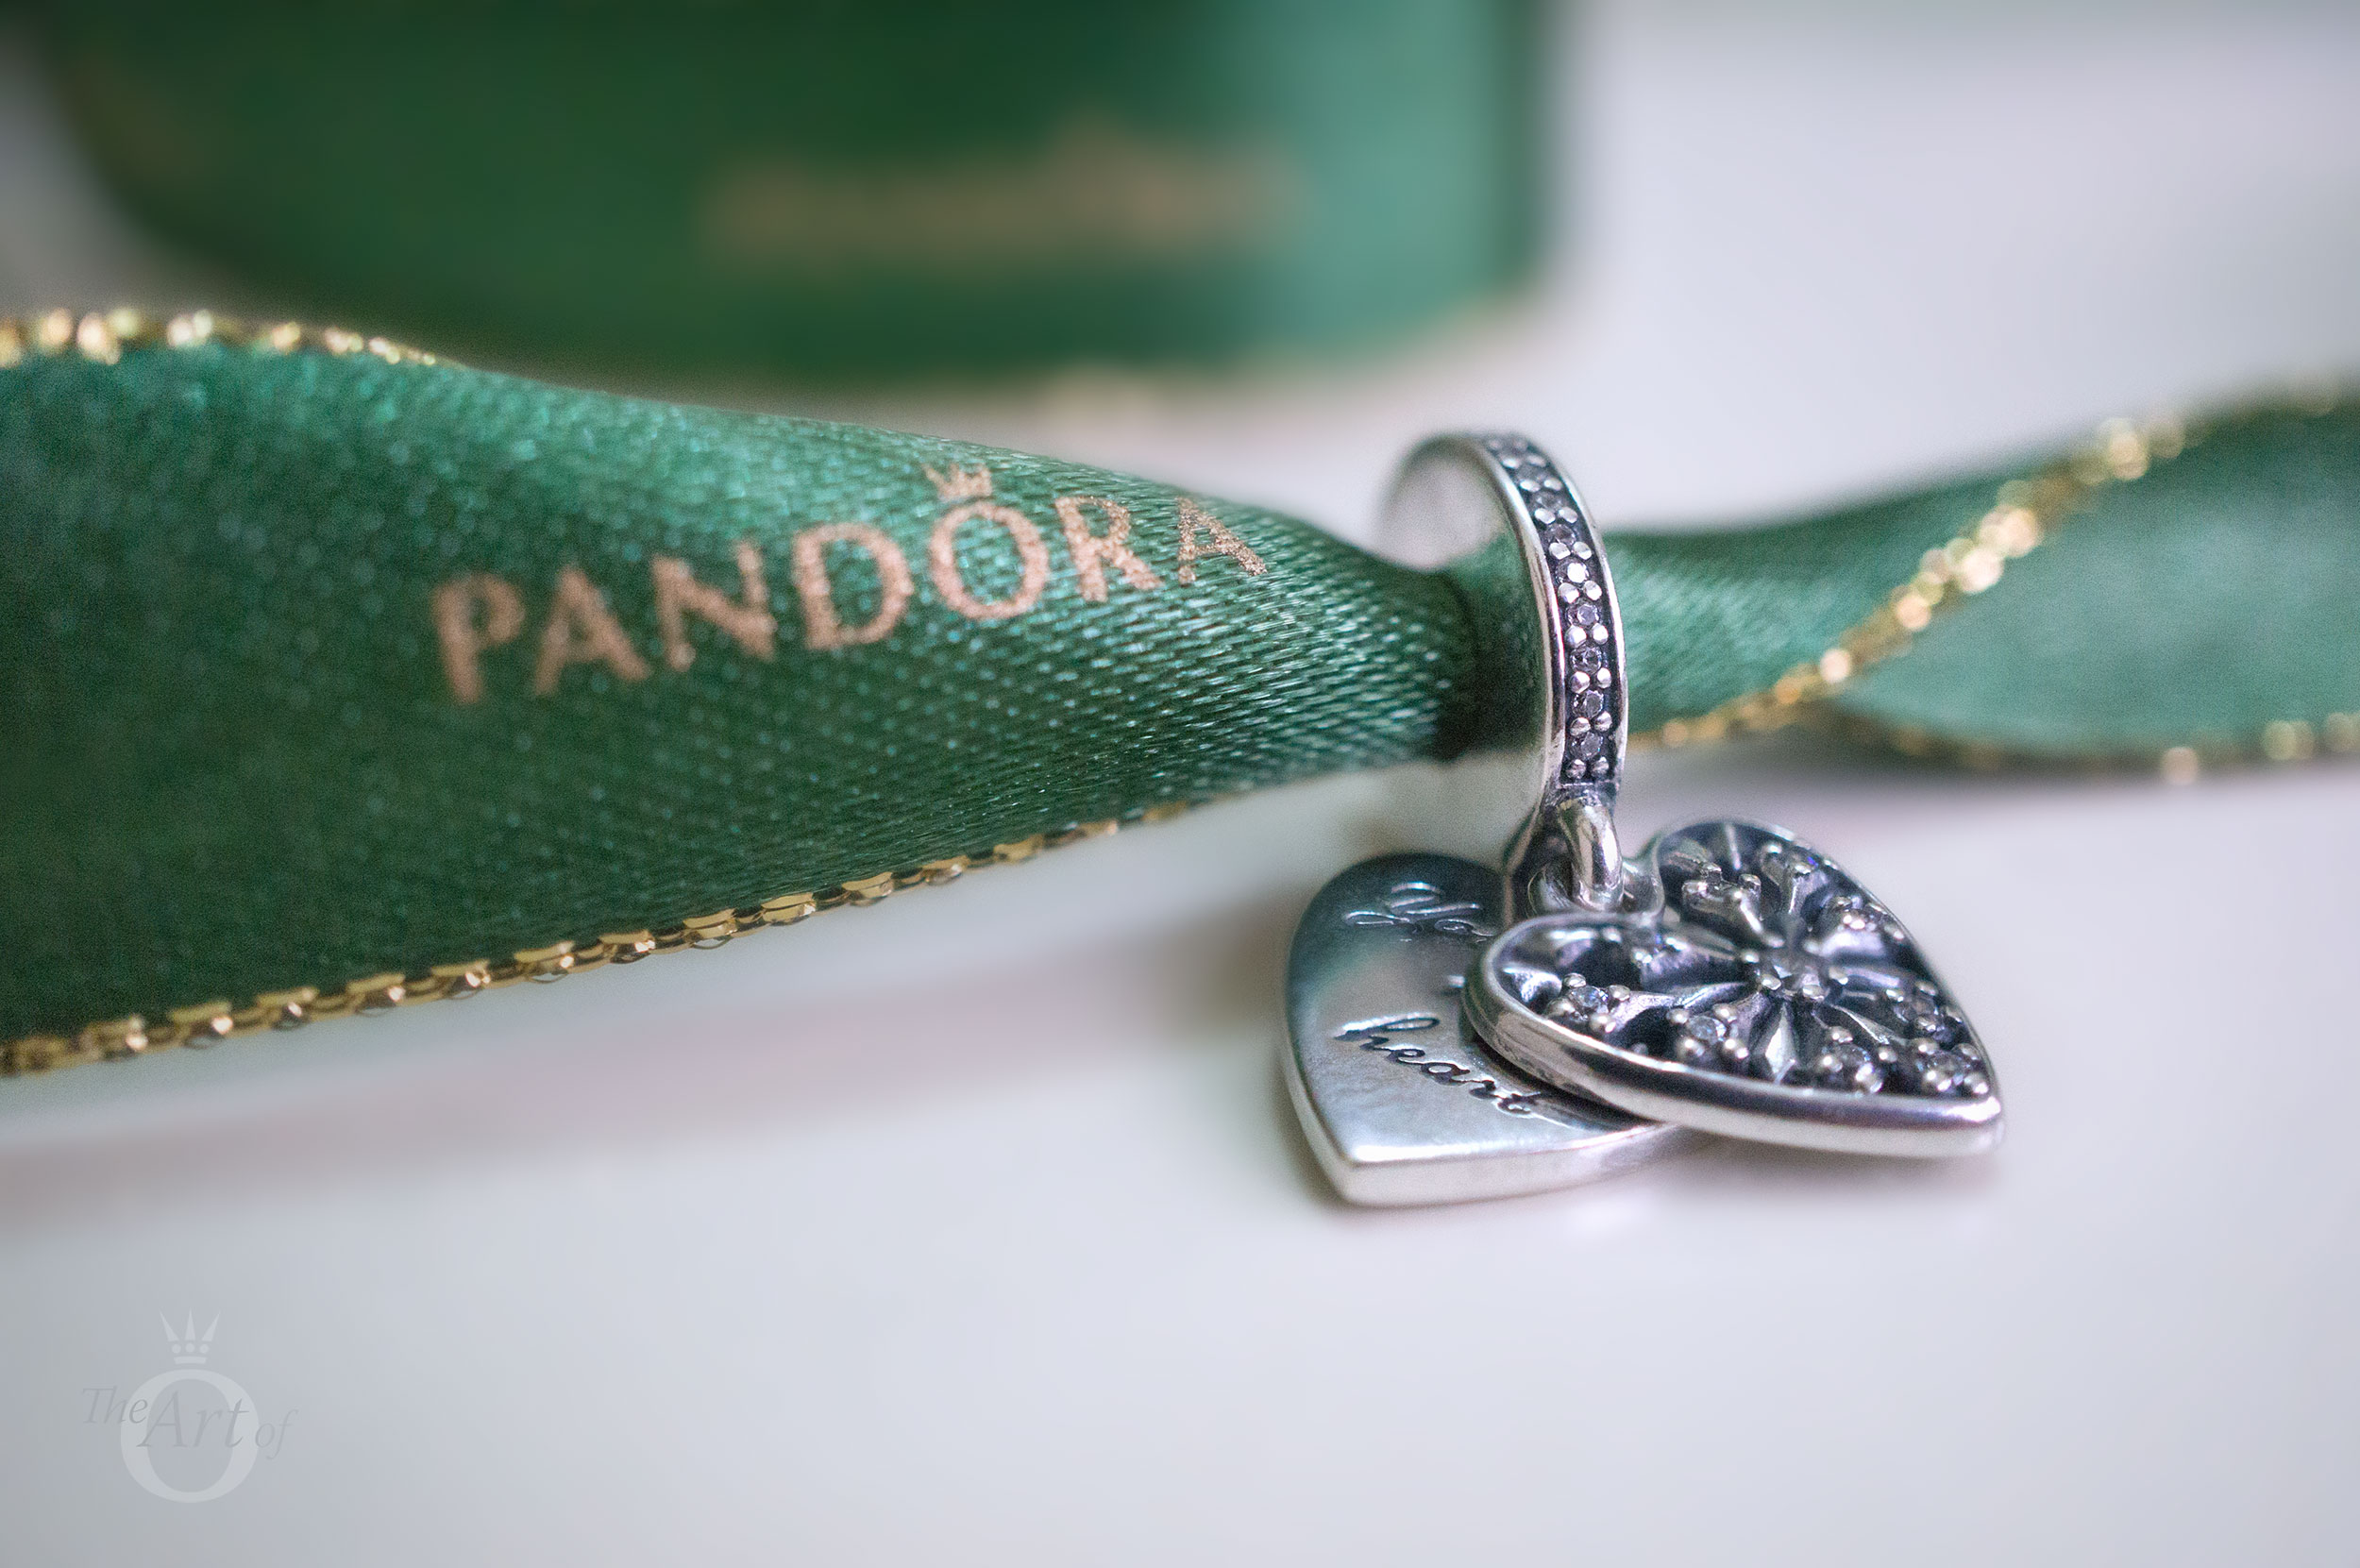 14705712b REVIEW: PANDORA Heart of Winter Pendant Charm - The Art of Pandora ...